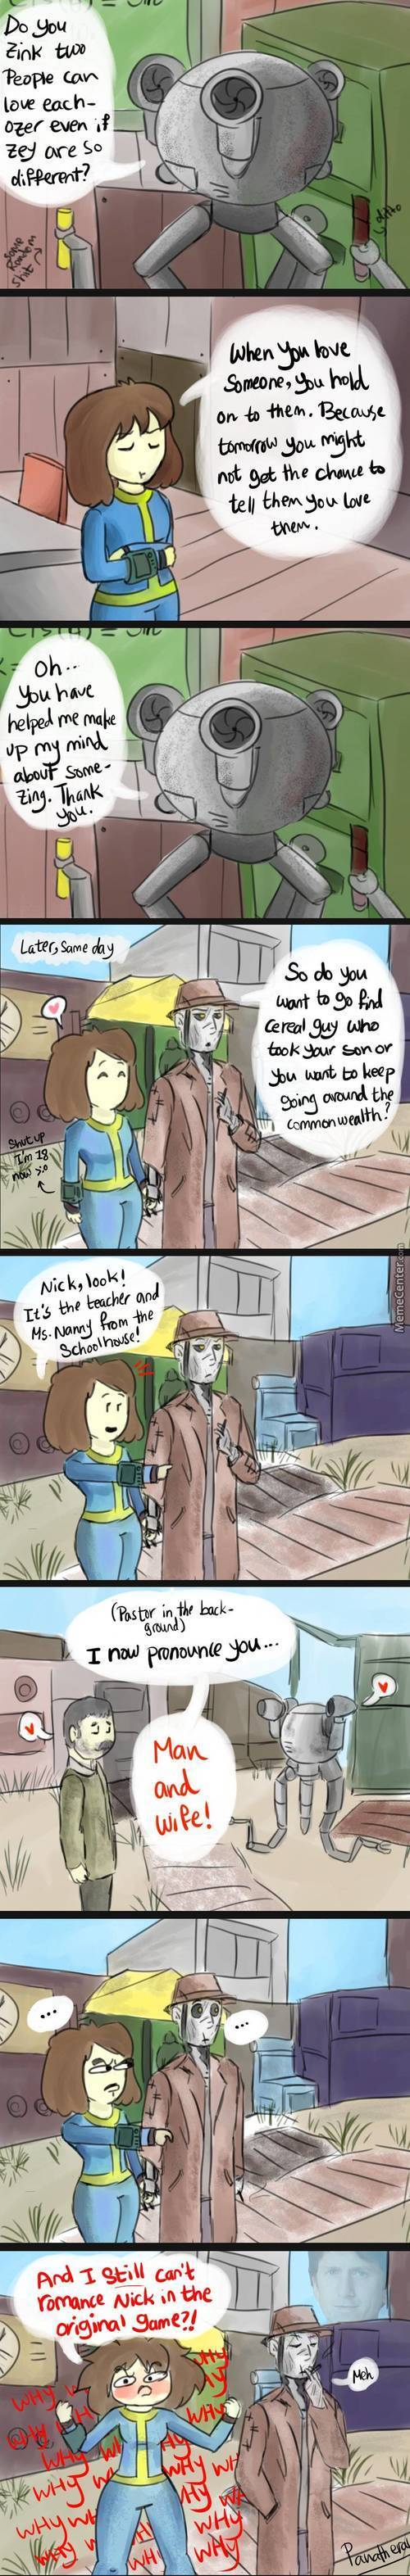 You Though I Had Forgotten Nick And Fallout!? You Were Wrong! >:d